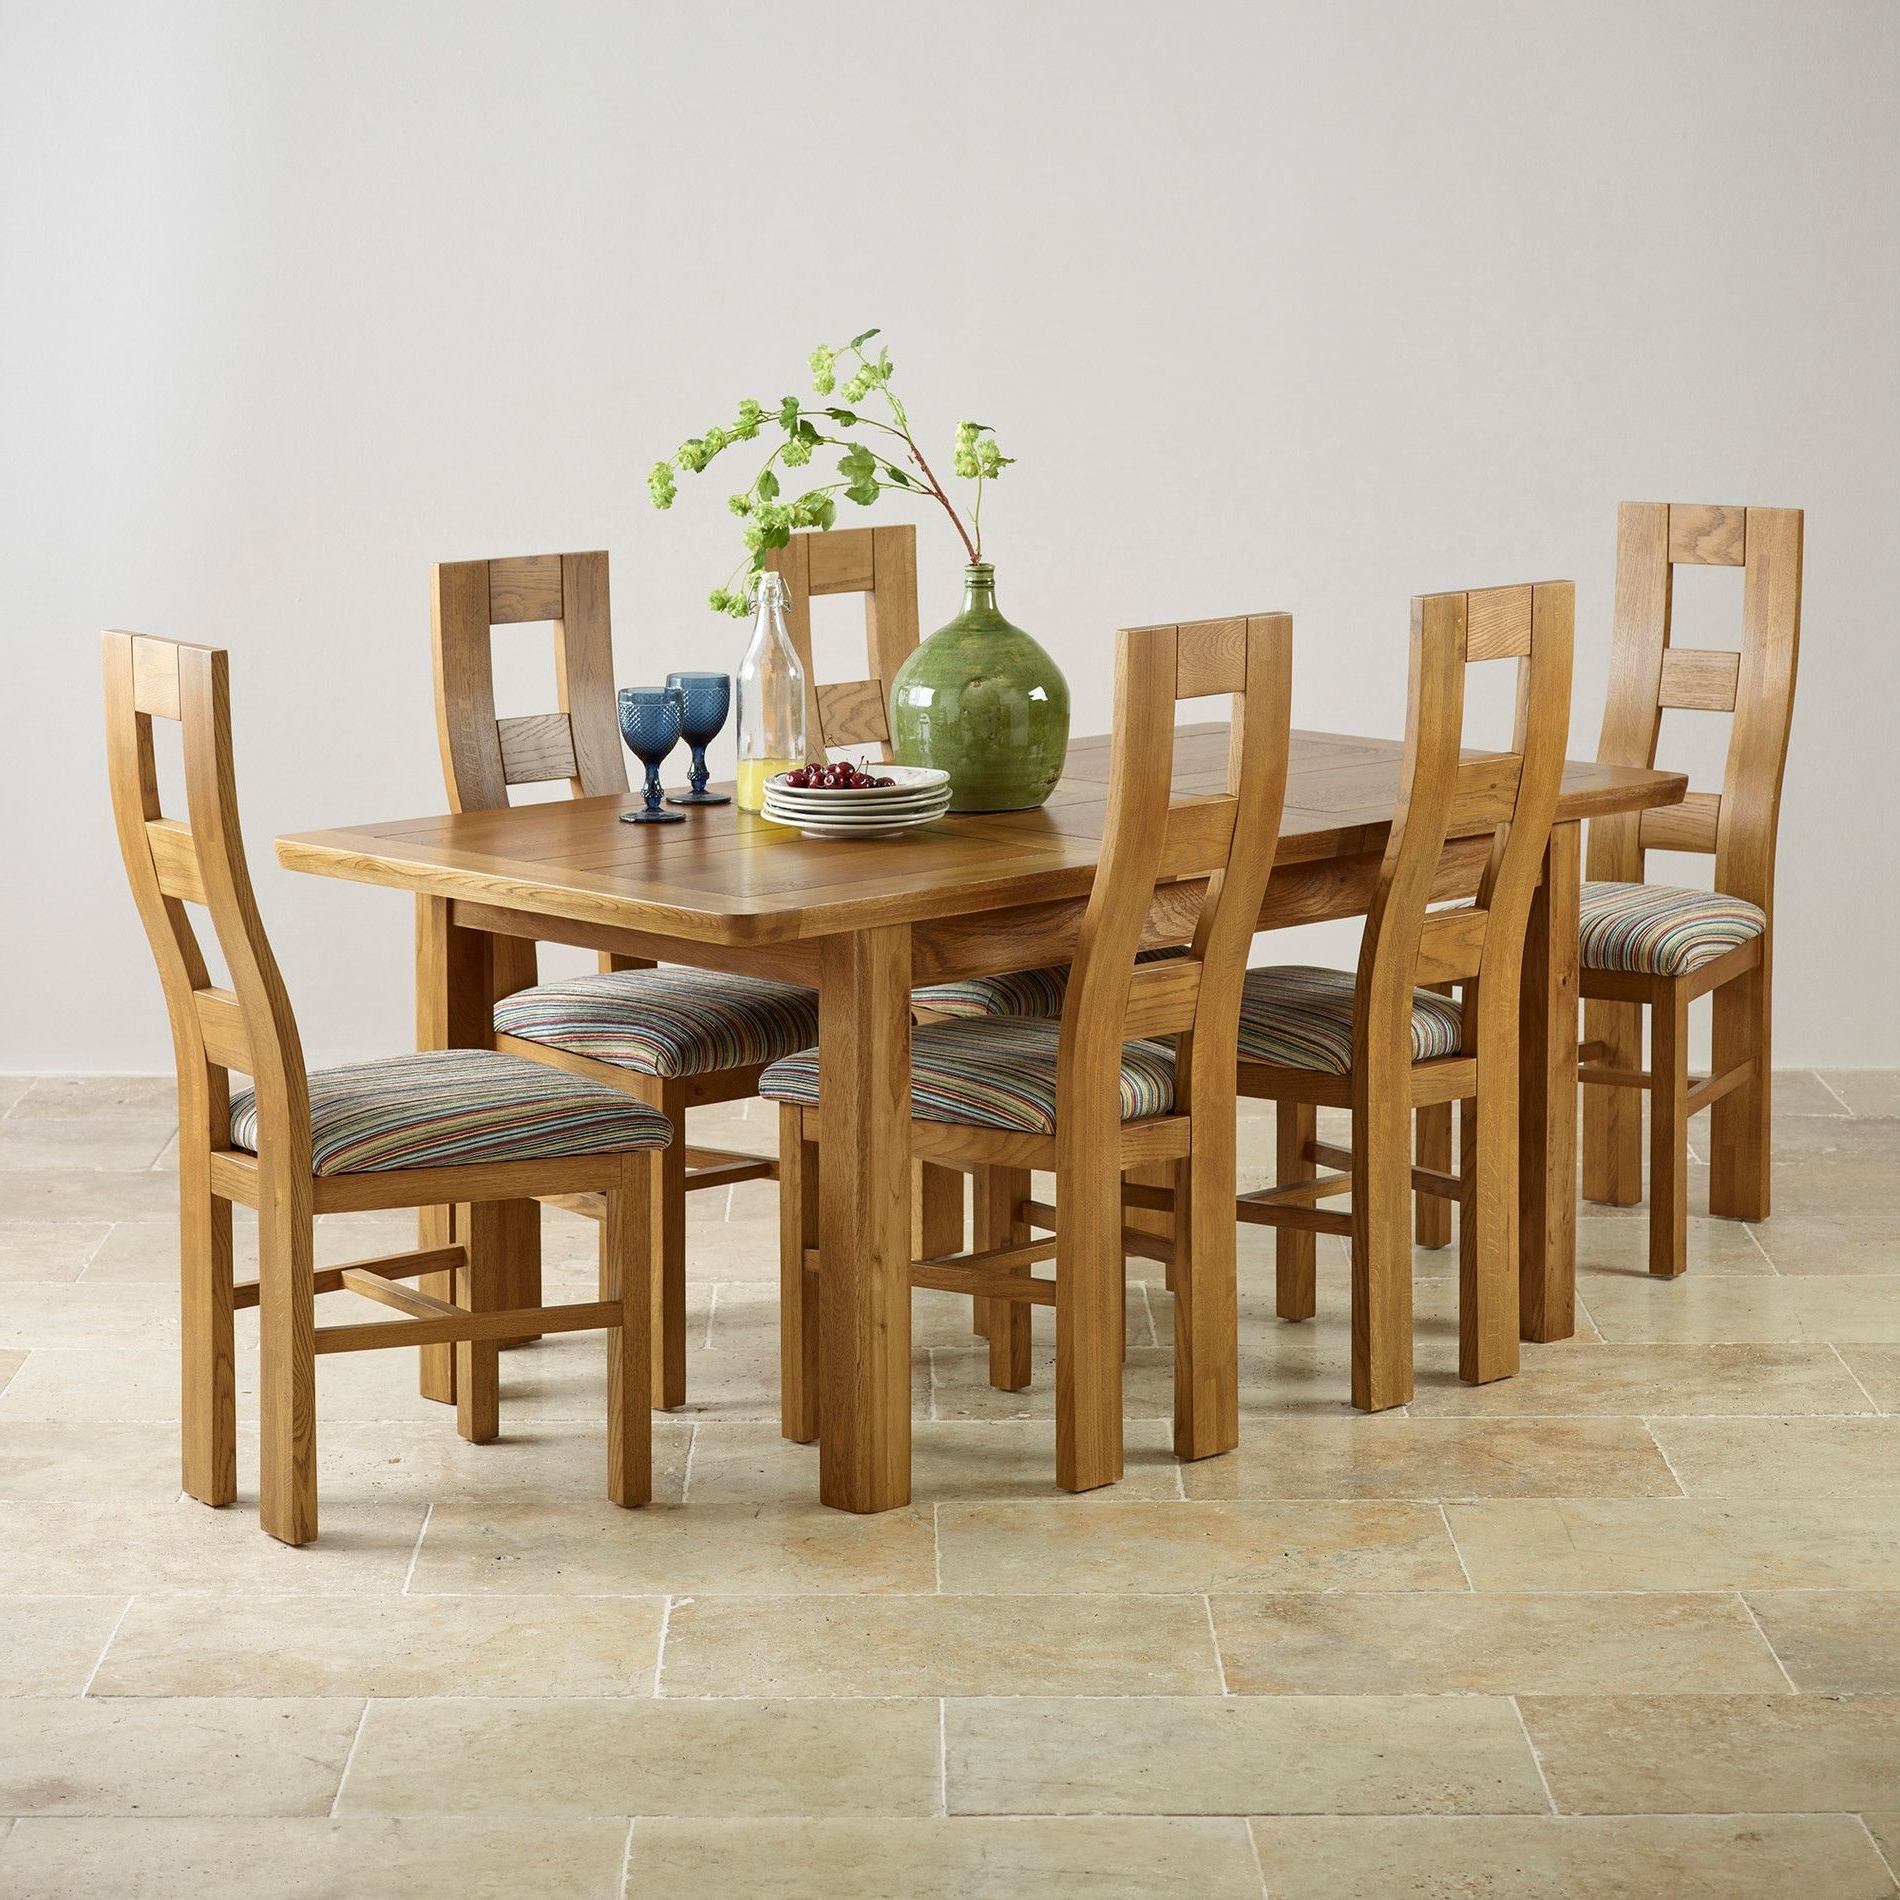 Solid Oak Extending Dining Table And 6 Chairs – Go To Regarding 2017 Oak Extending Dining Tables And 6 Chairs (View 18 of 25)